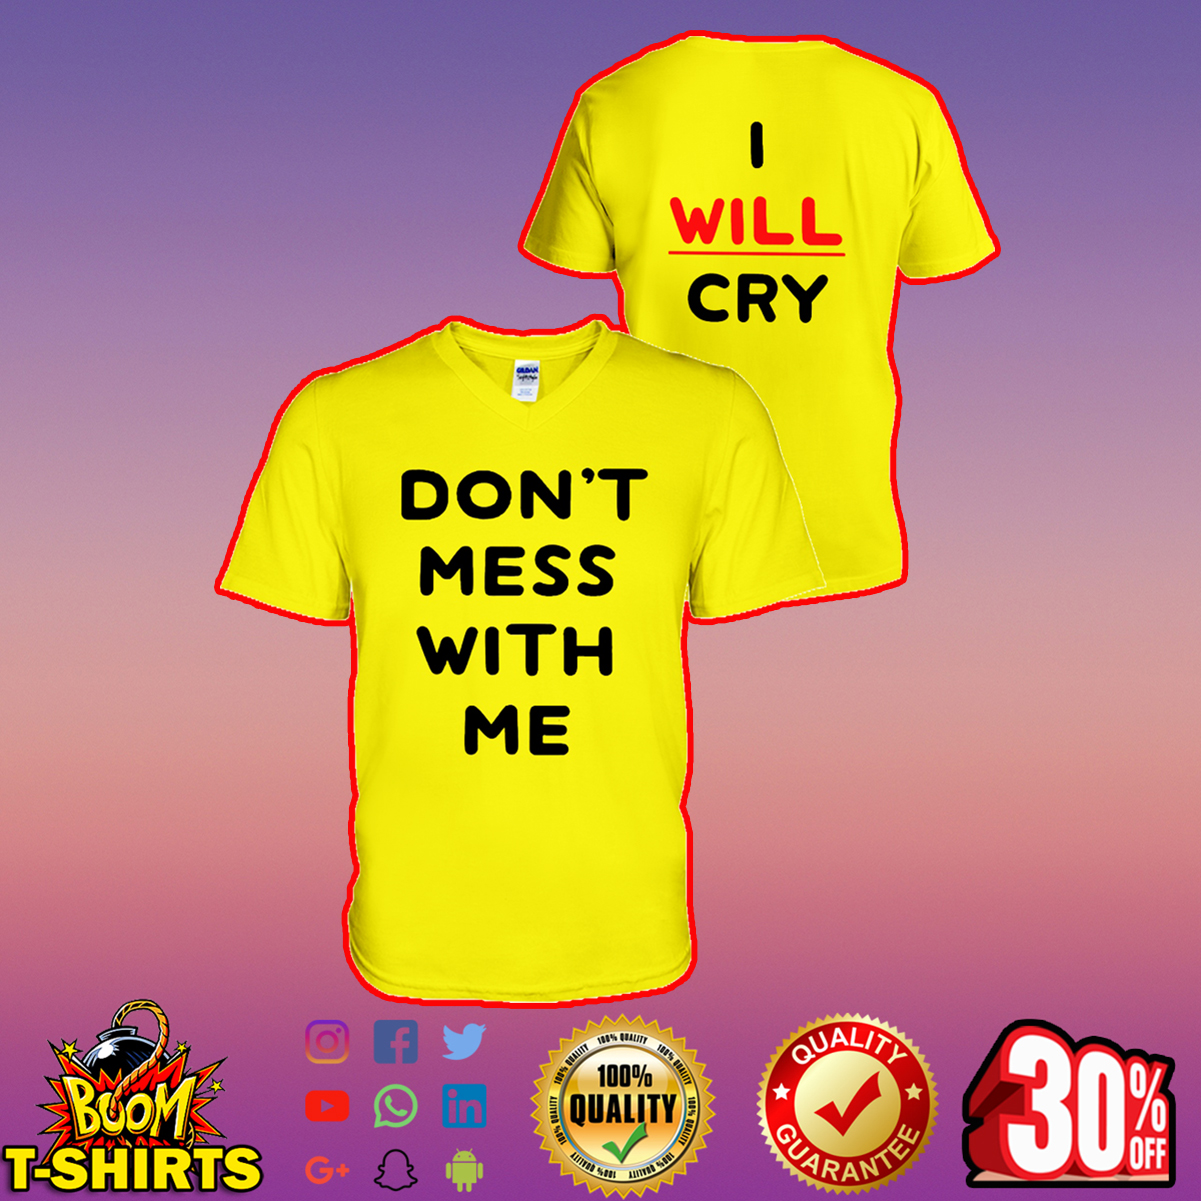 Don't mess with me I will cry v-neck